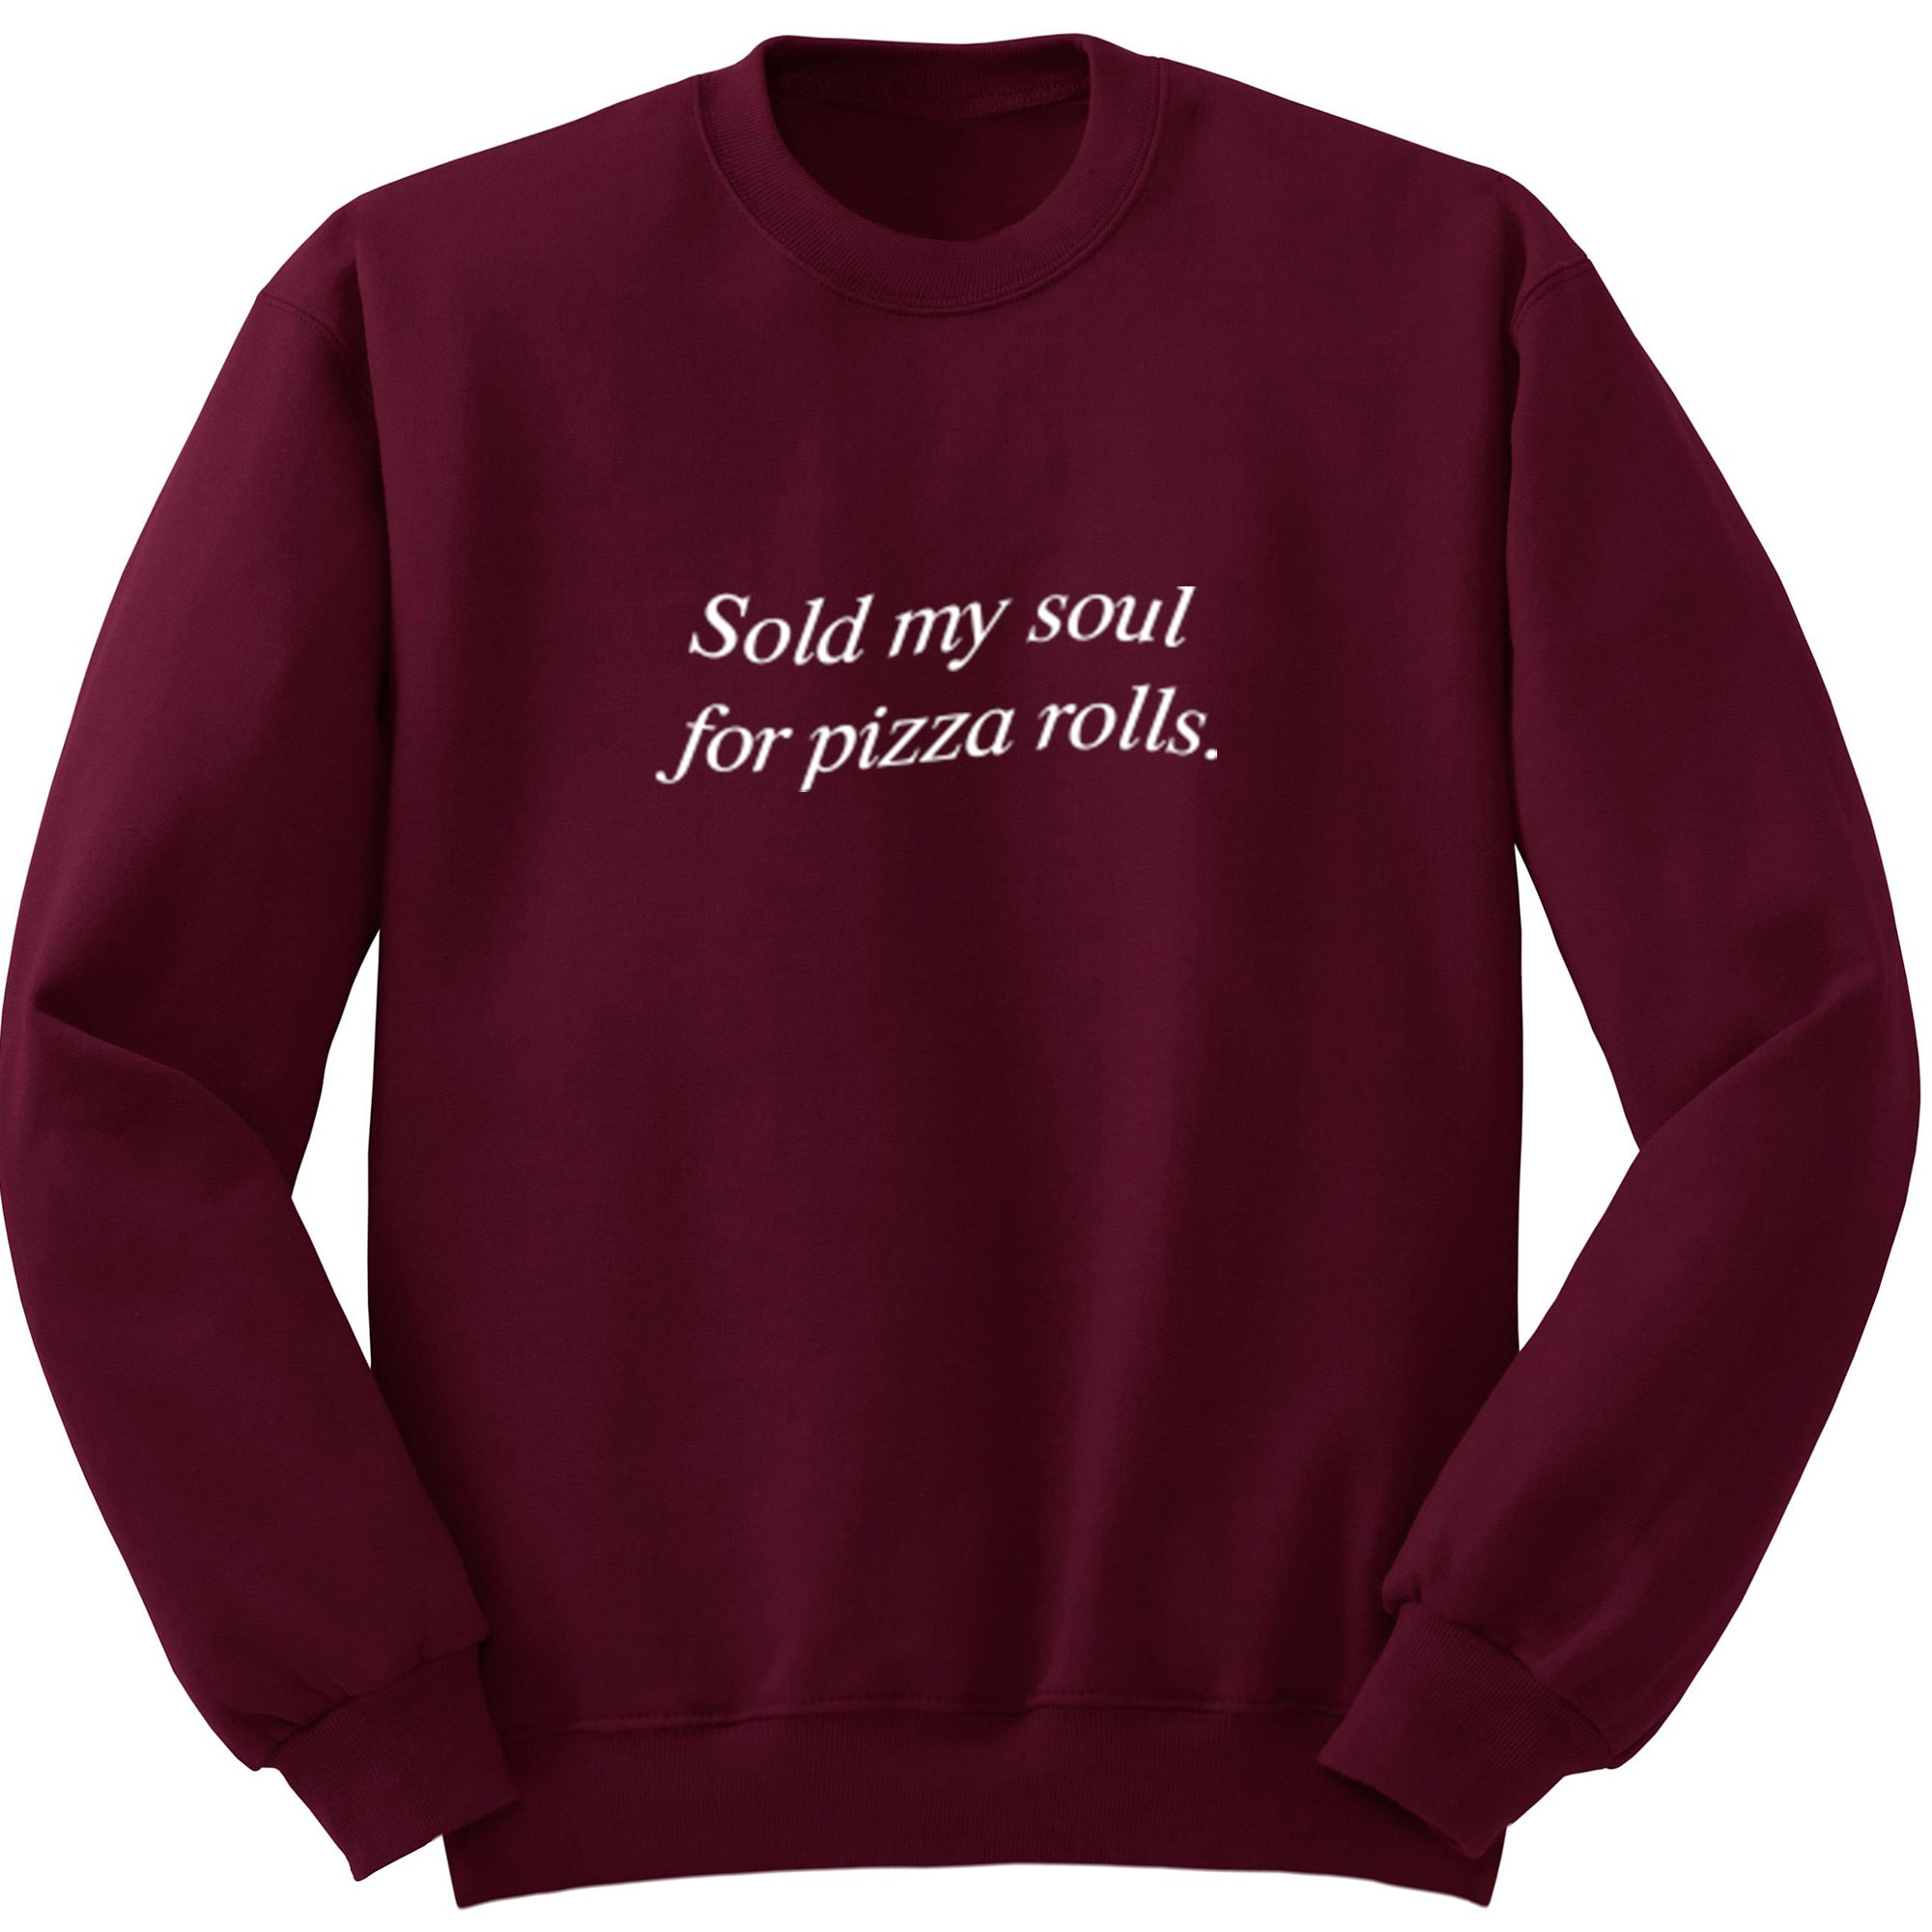 Sold My Soul For Pizza Rolls Unisex Jumper S0901 - Illustrated Identity Ltd.